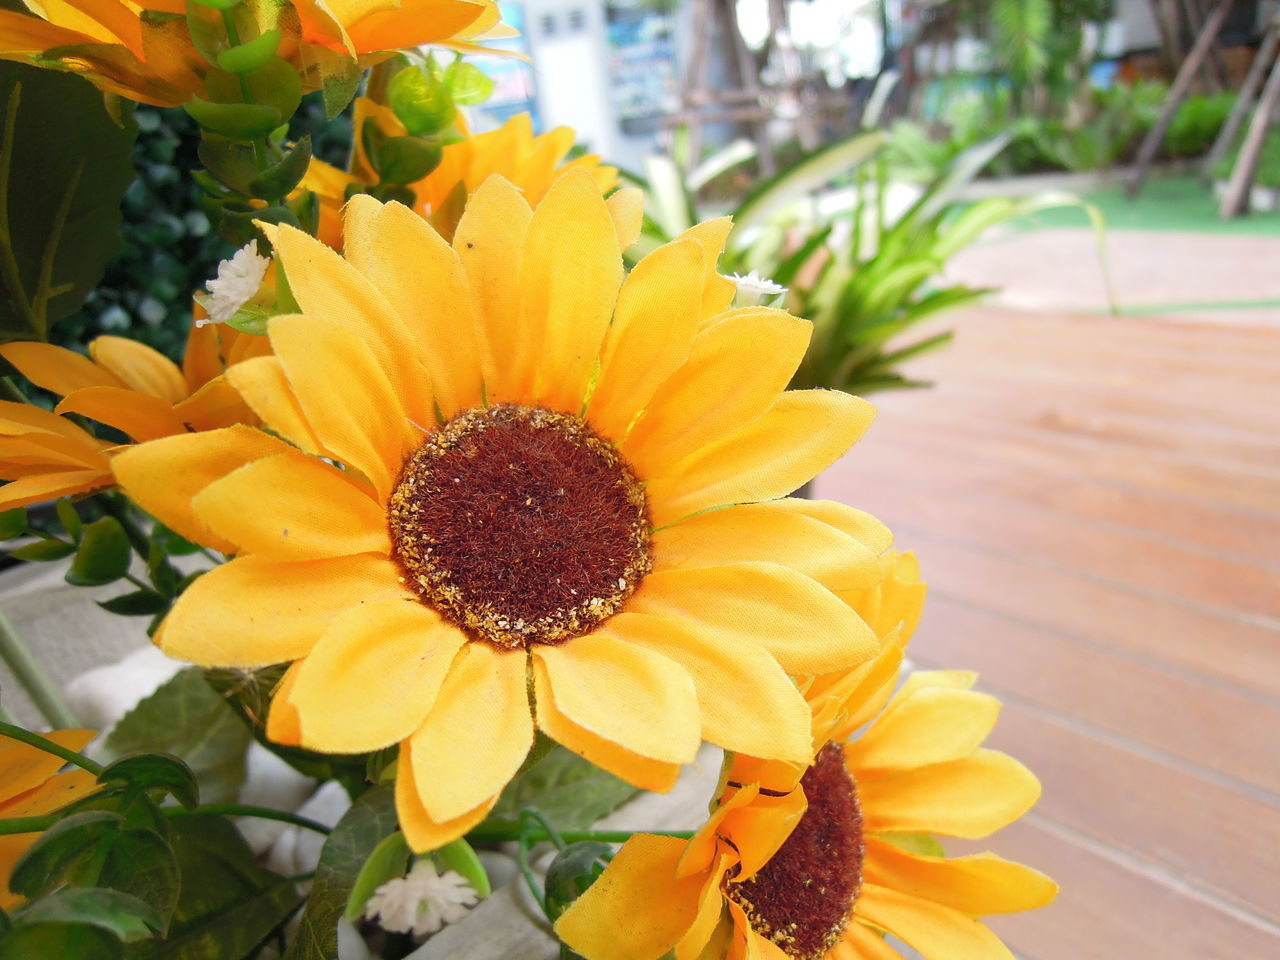 counterfeit sunflower in garden Bloom Blossom Close-up Counterfeit Counterfeit Flower Counterfeit Sunflower Fake Fake Flower Fake Flowers Fake Sunflower Flora Flower Garden Home House Leaf Leaves Nature Nature Park Plant Sunflower Tree Yellow Yellow Flower